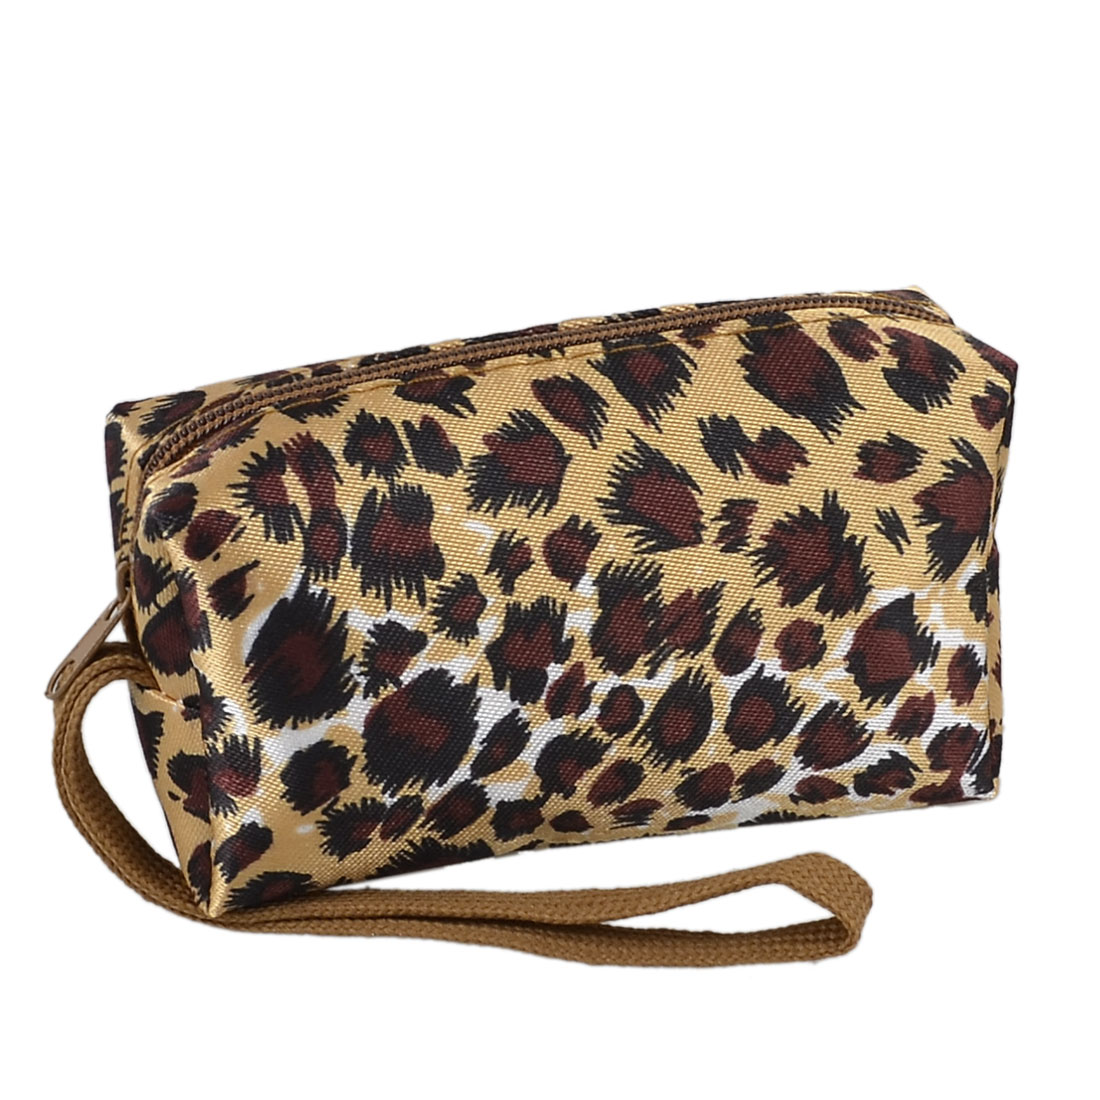 Zipped Closure Black Burgundy Leopard Print Hand Strap Rectangle Wallet Beige for Lady